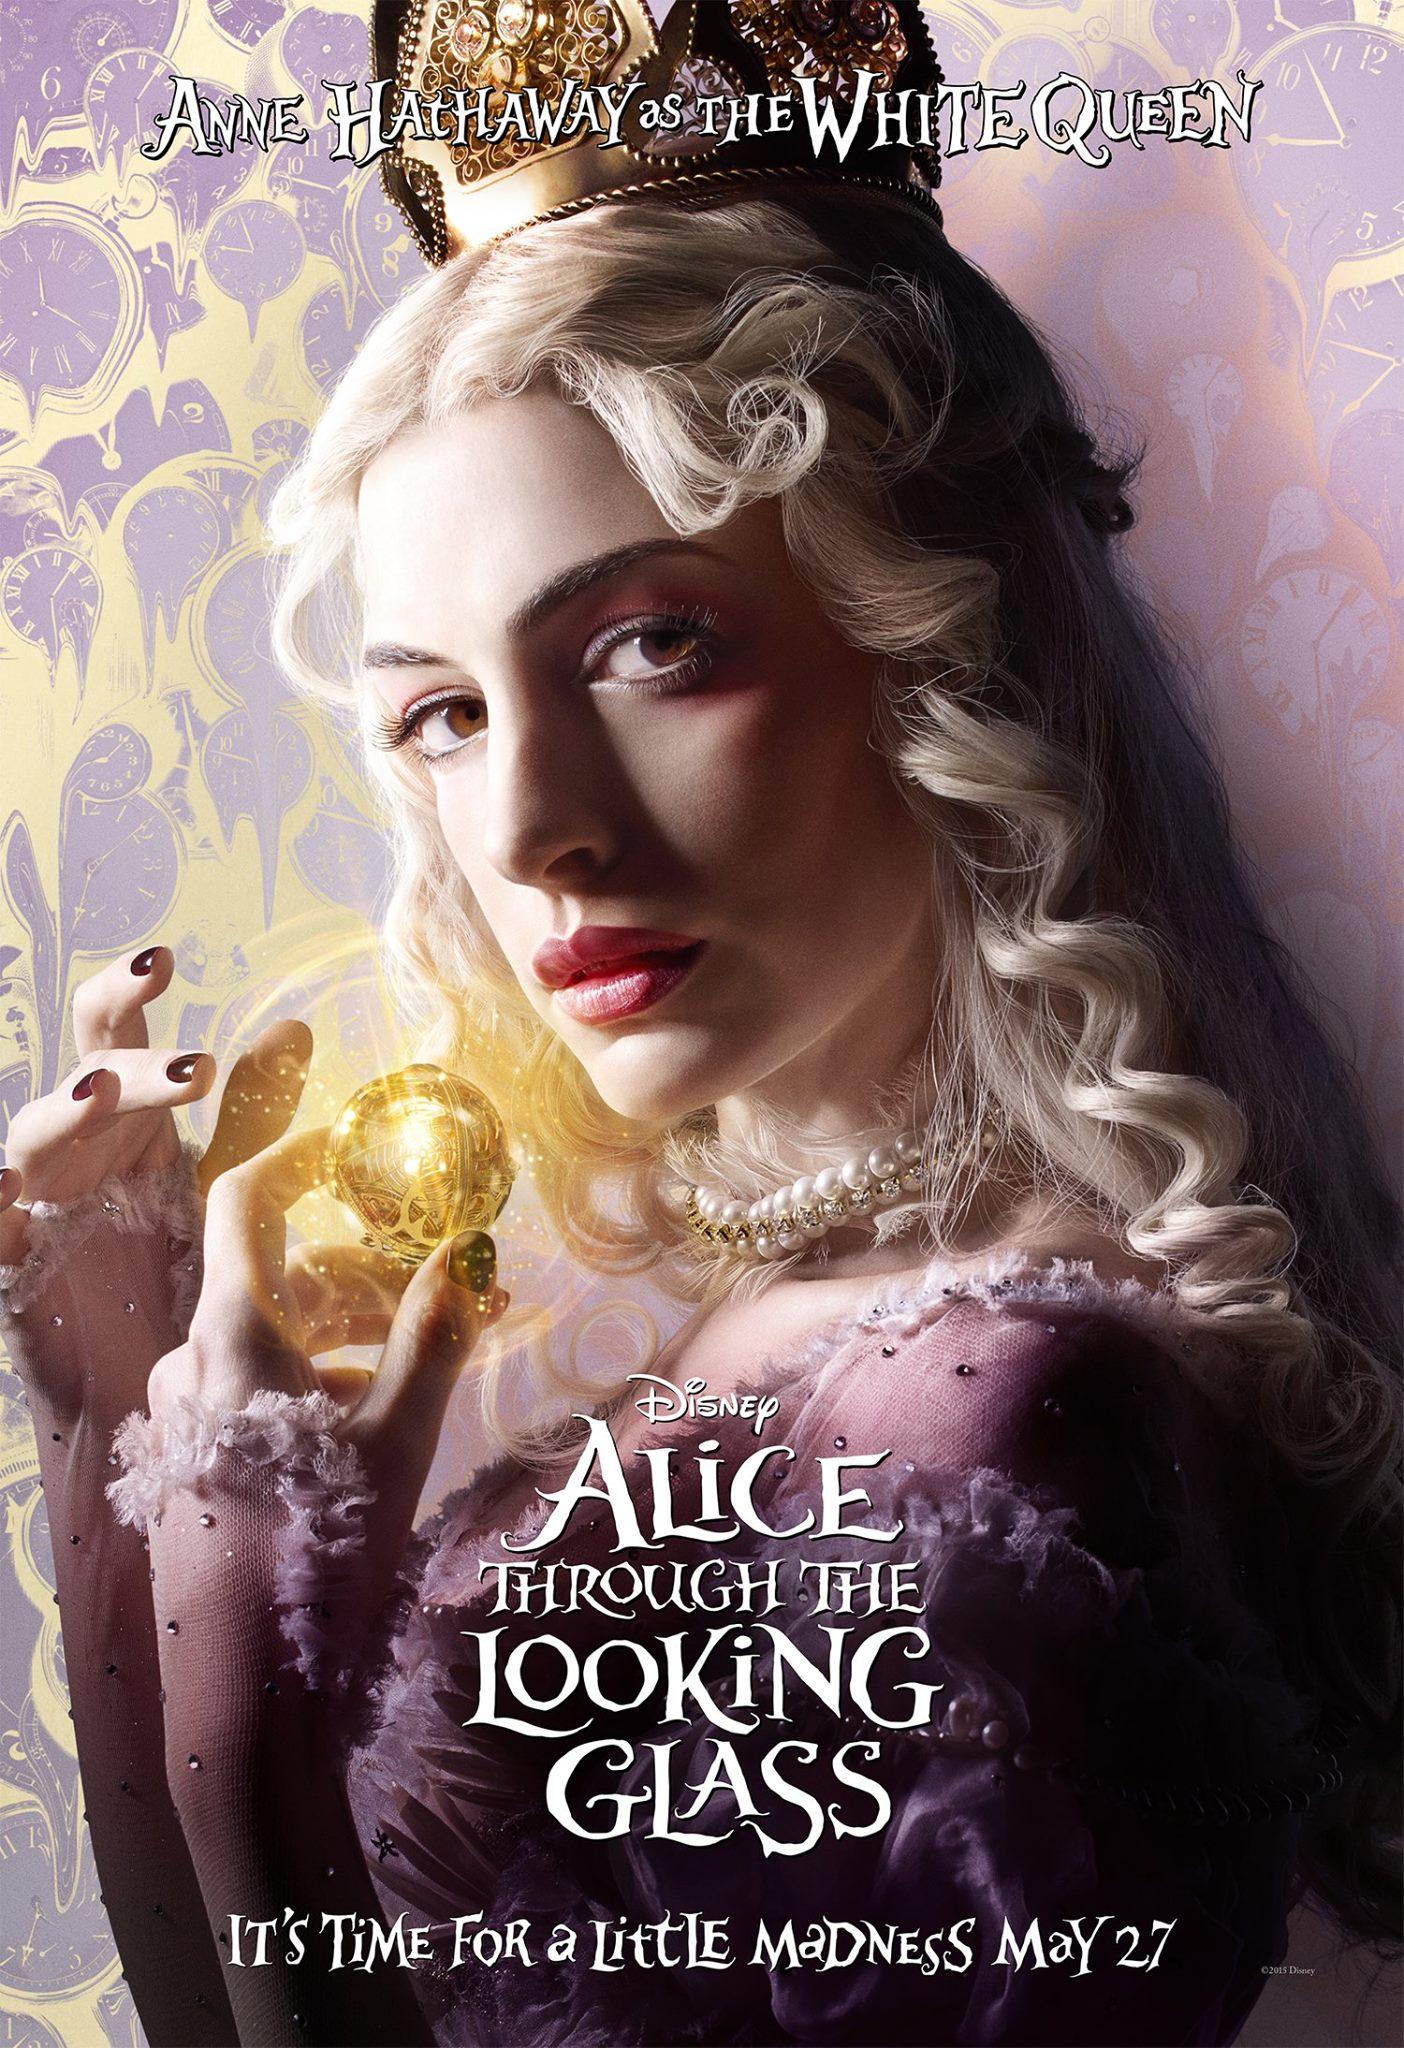 Alice-through-the-looking-glass-whitequeen